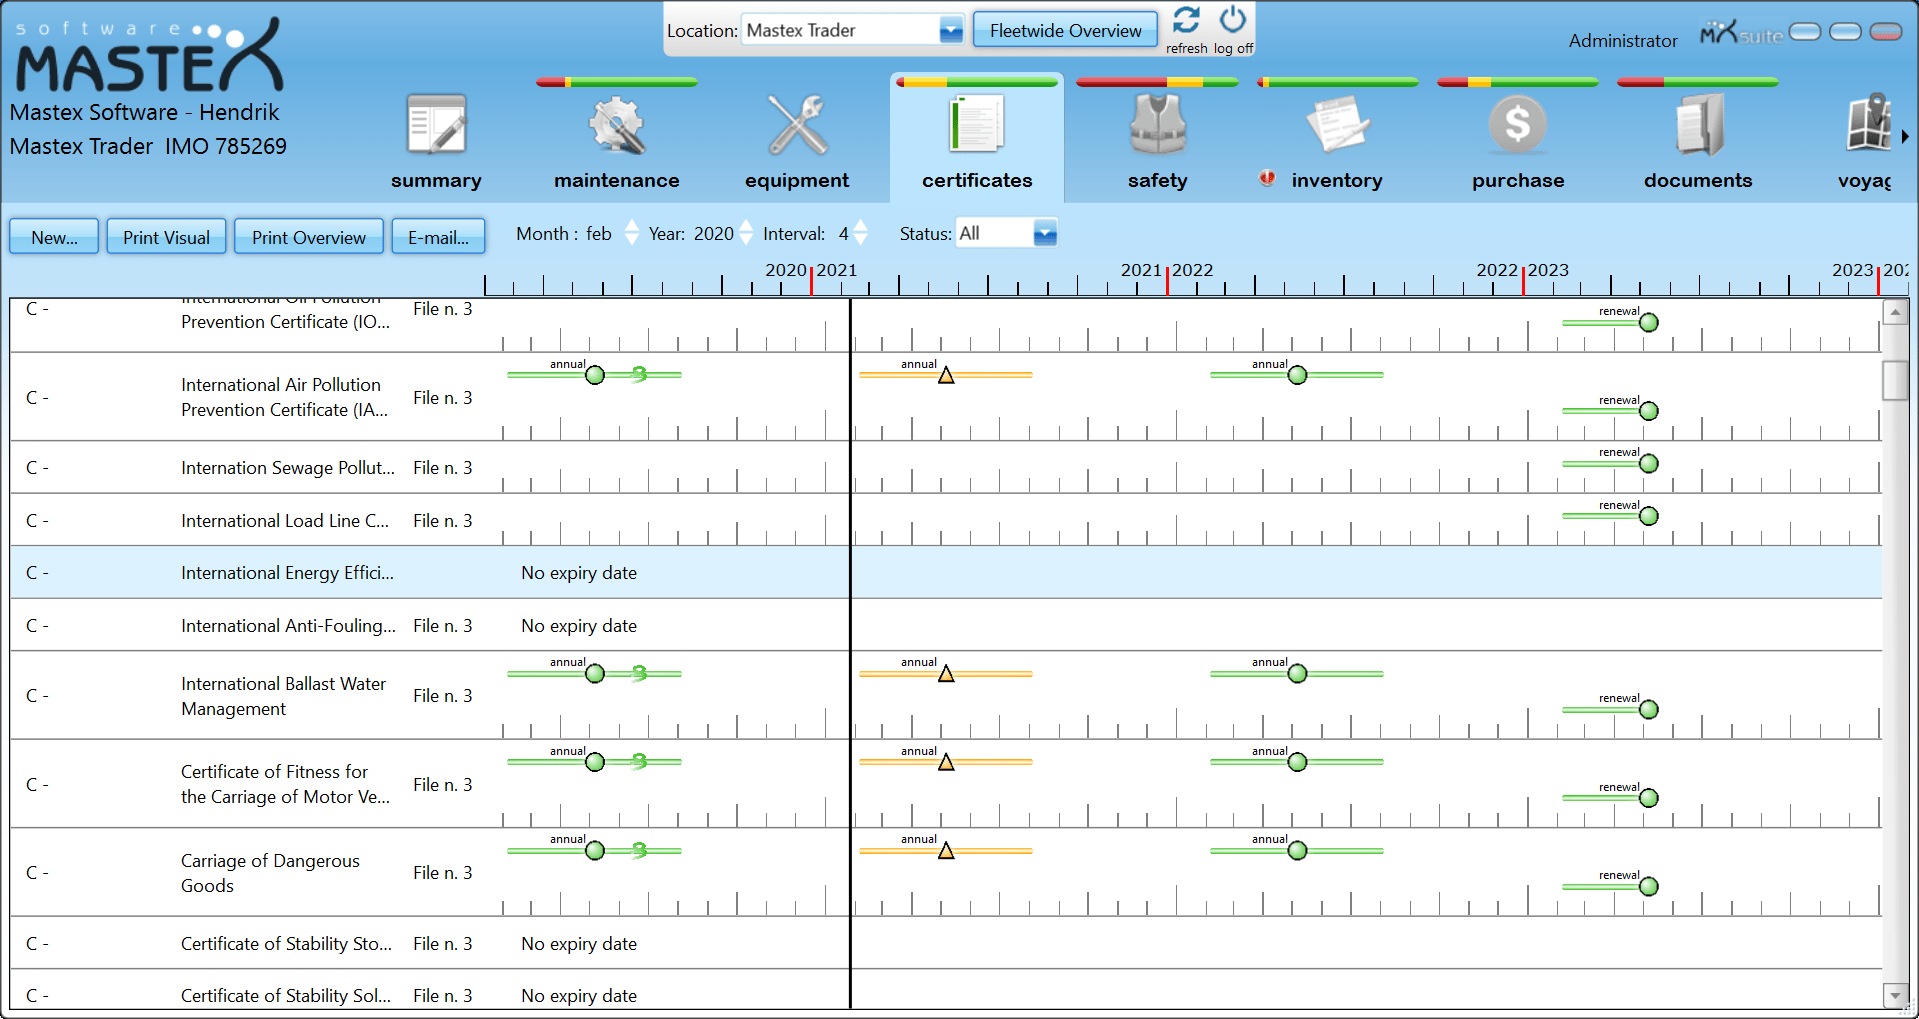 Certificates - overview